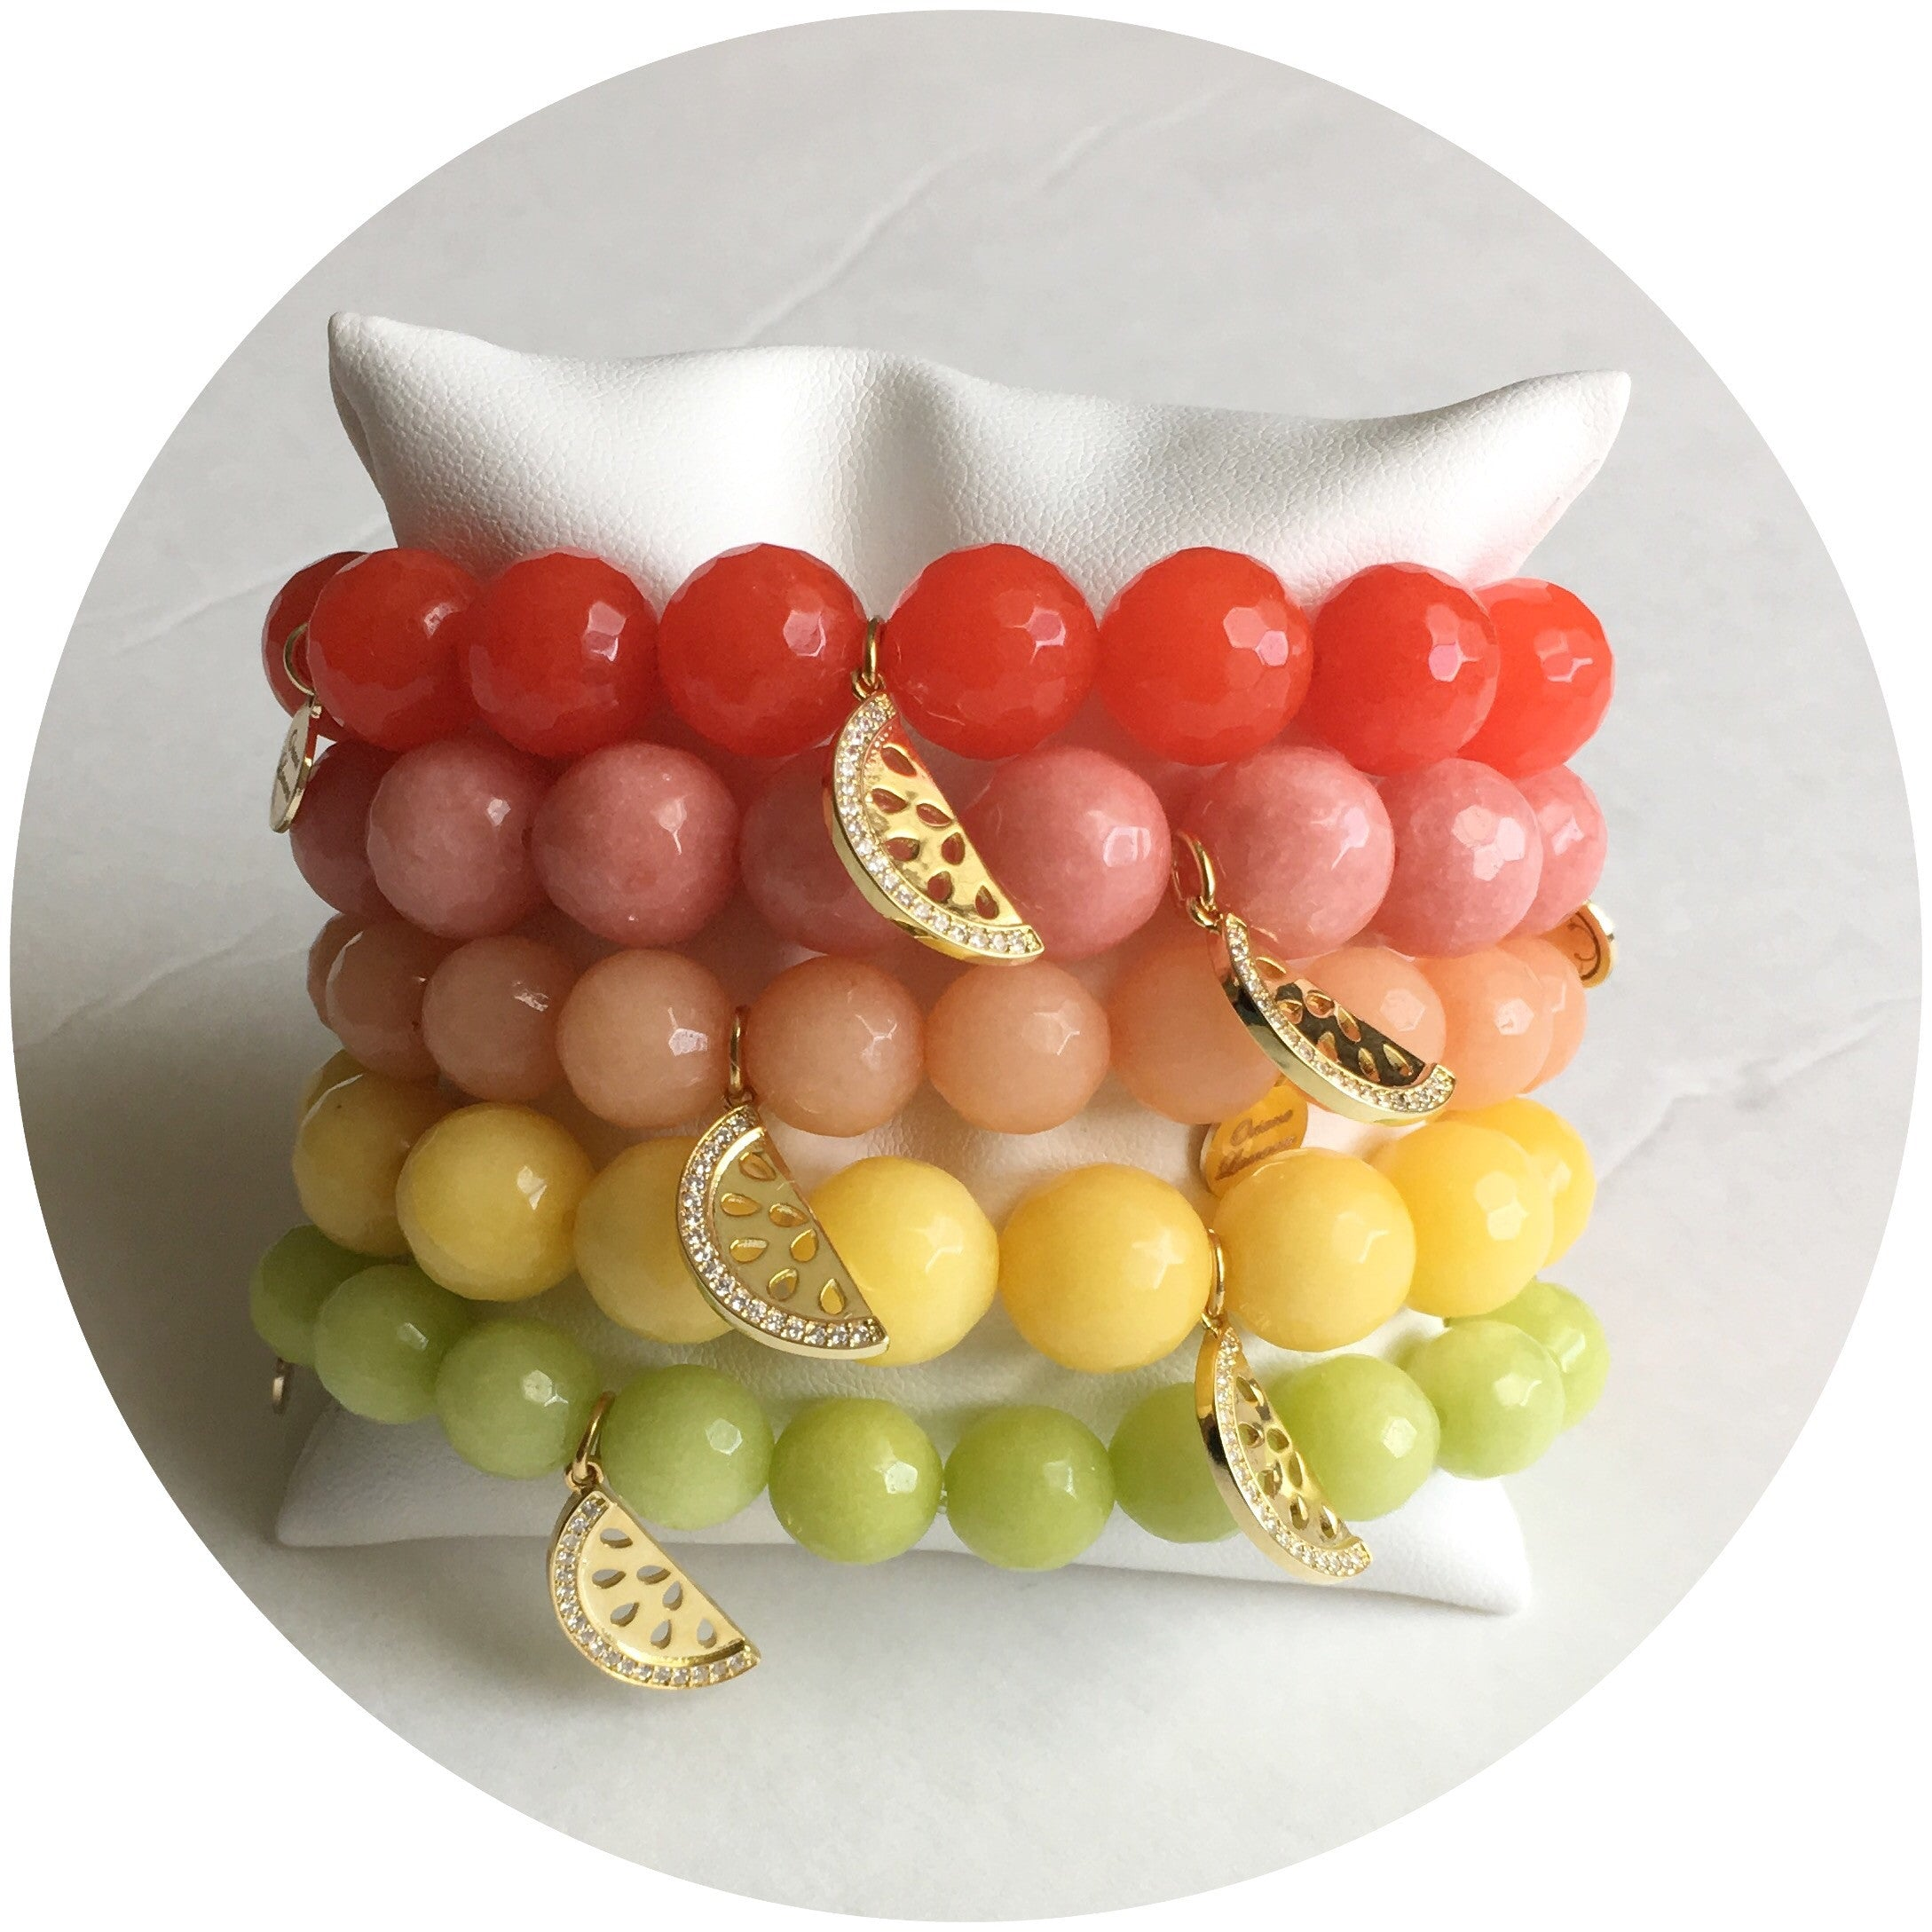 Citrus Armparty